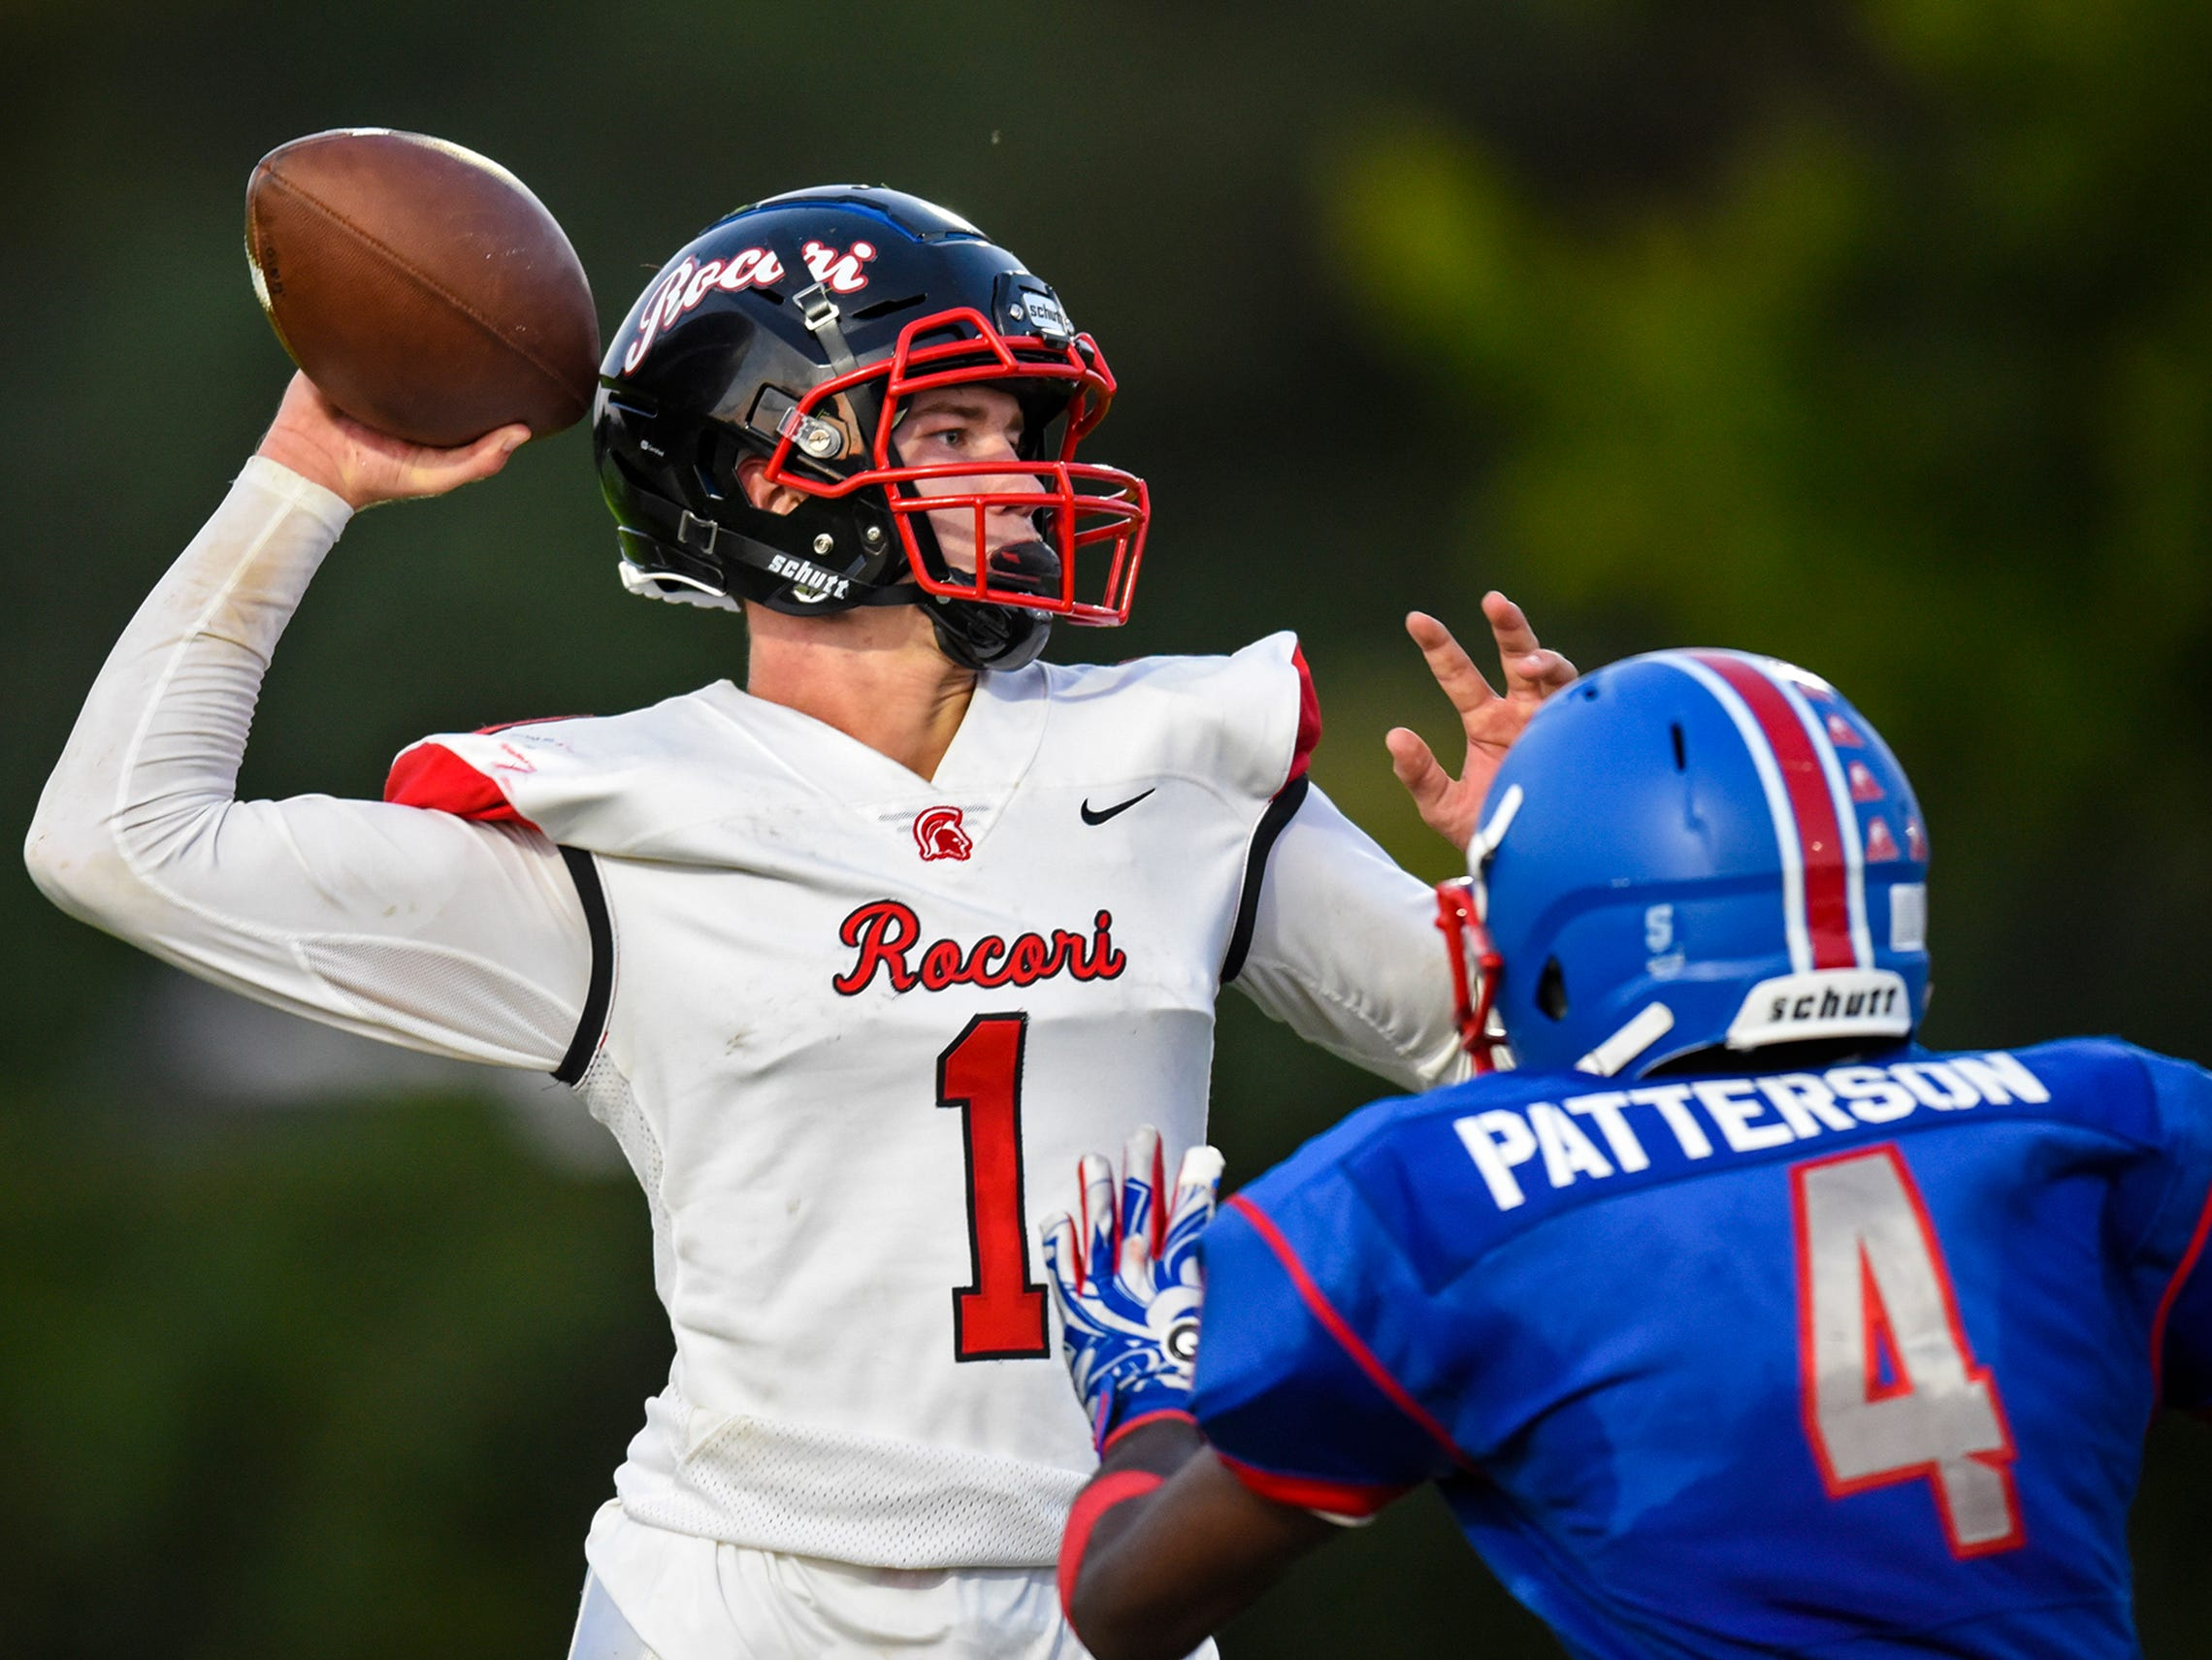 ROCORI's Jack Steil throws a pass during the Friday, Sept. 7, game at Apollo High School in St. Cloud.